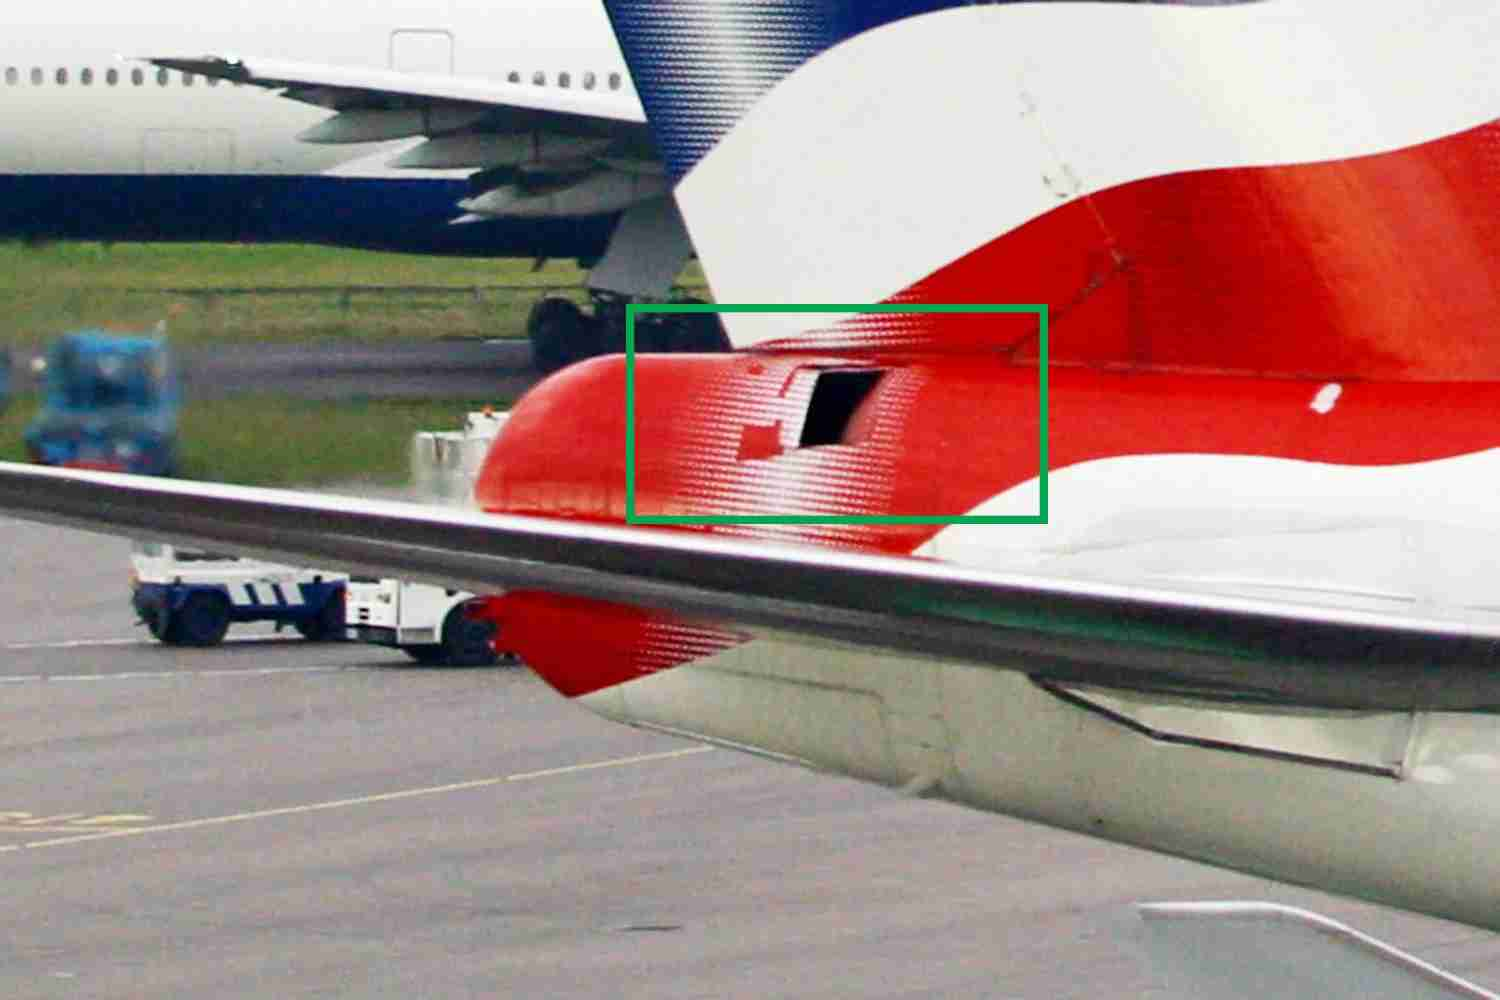 The air intake for the APU on a British Airways Boeing 747. Image via British Airways.